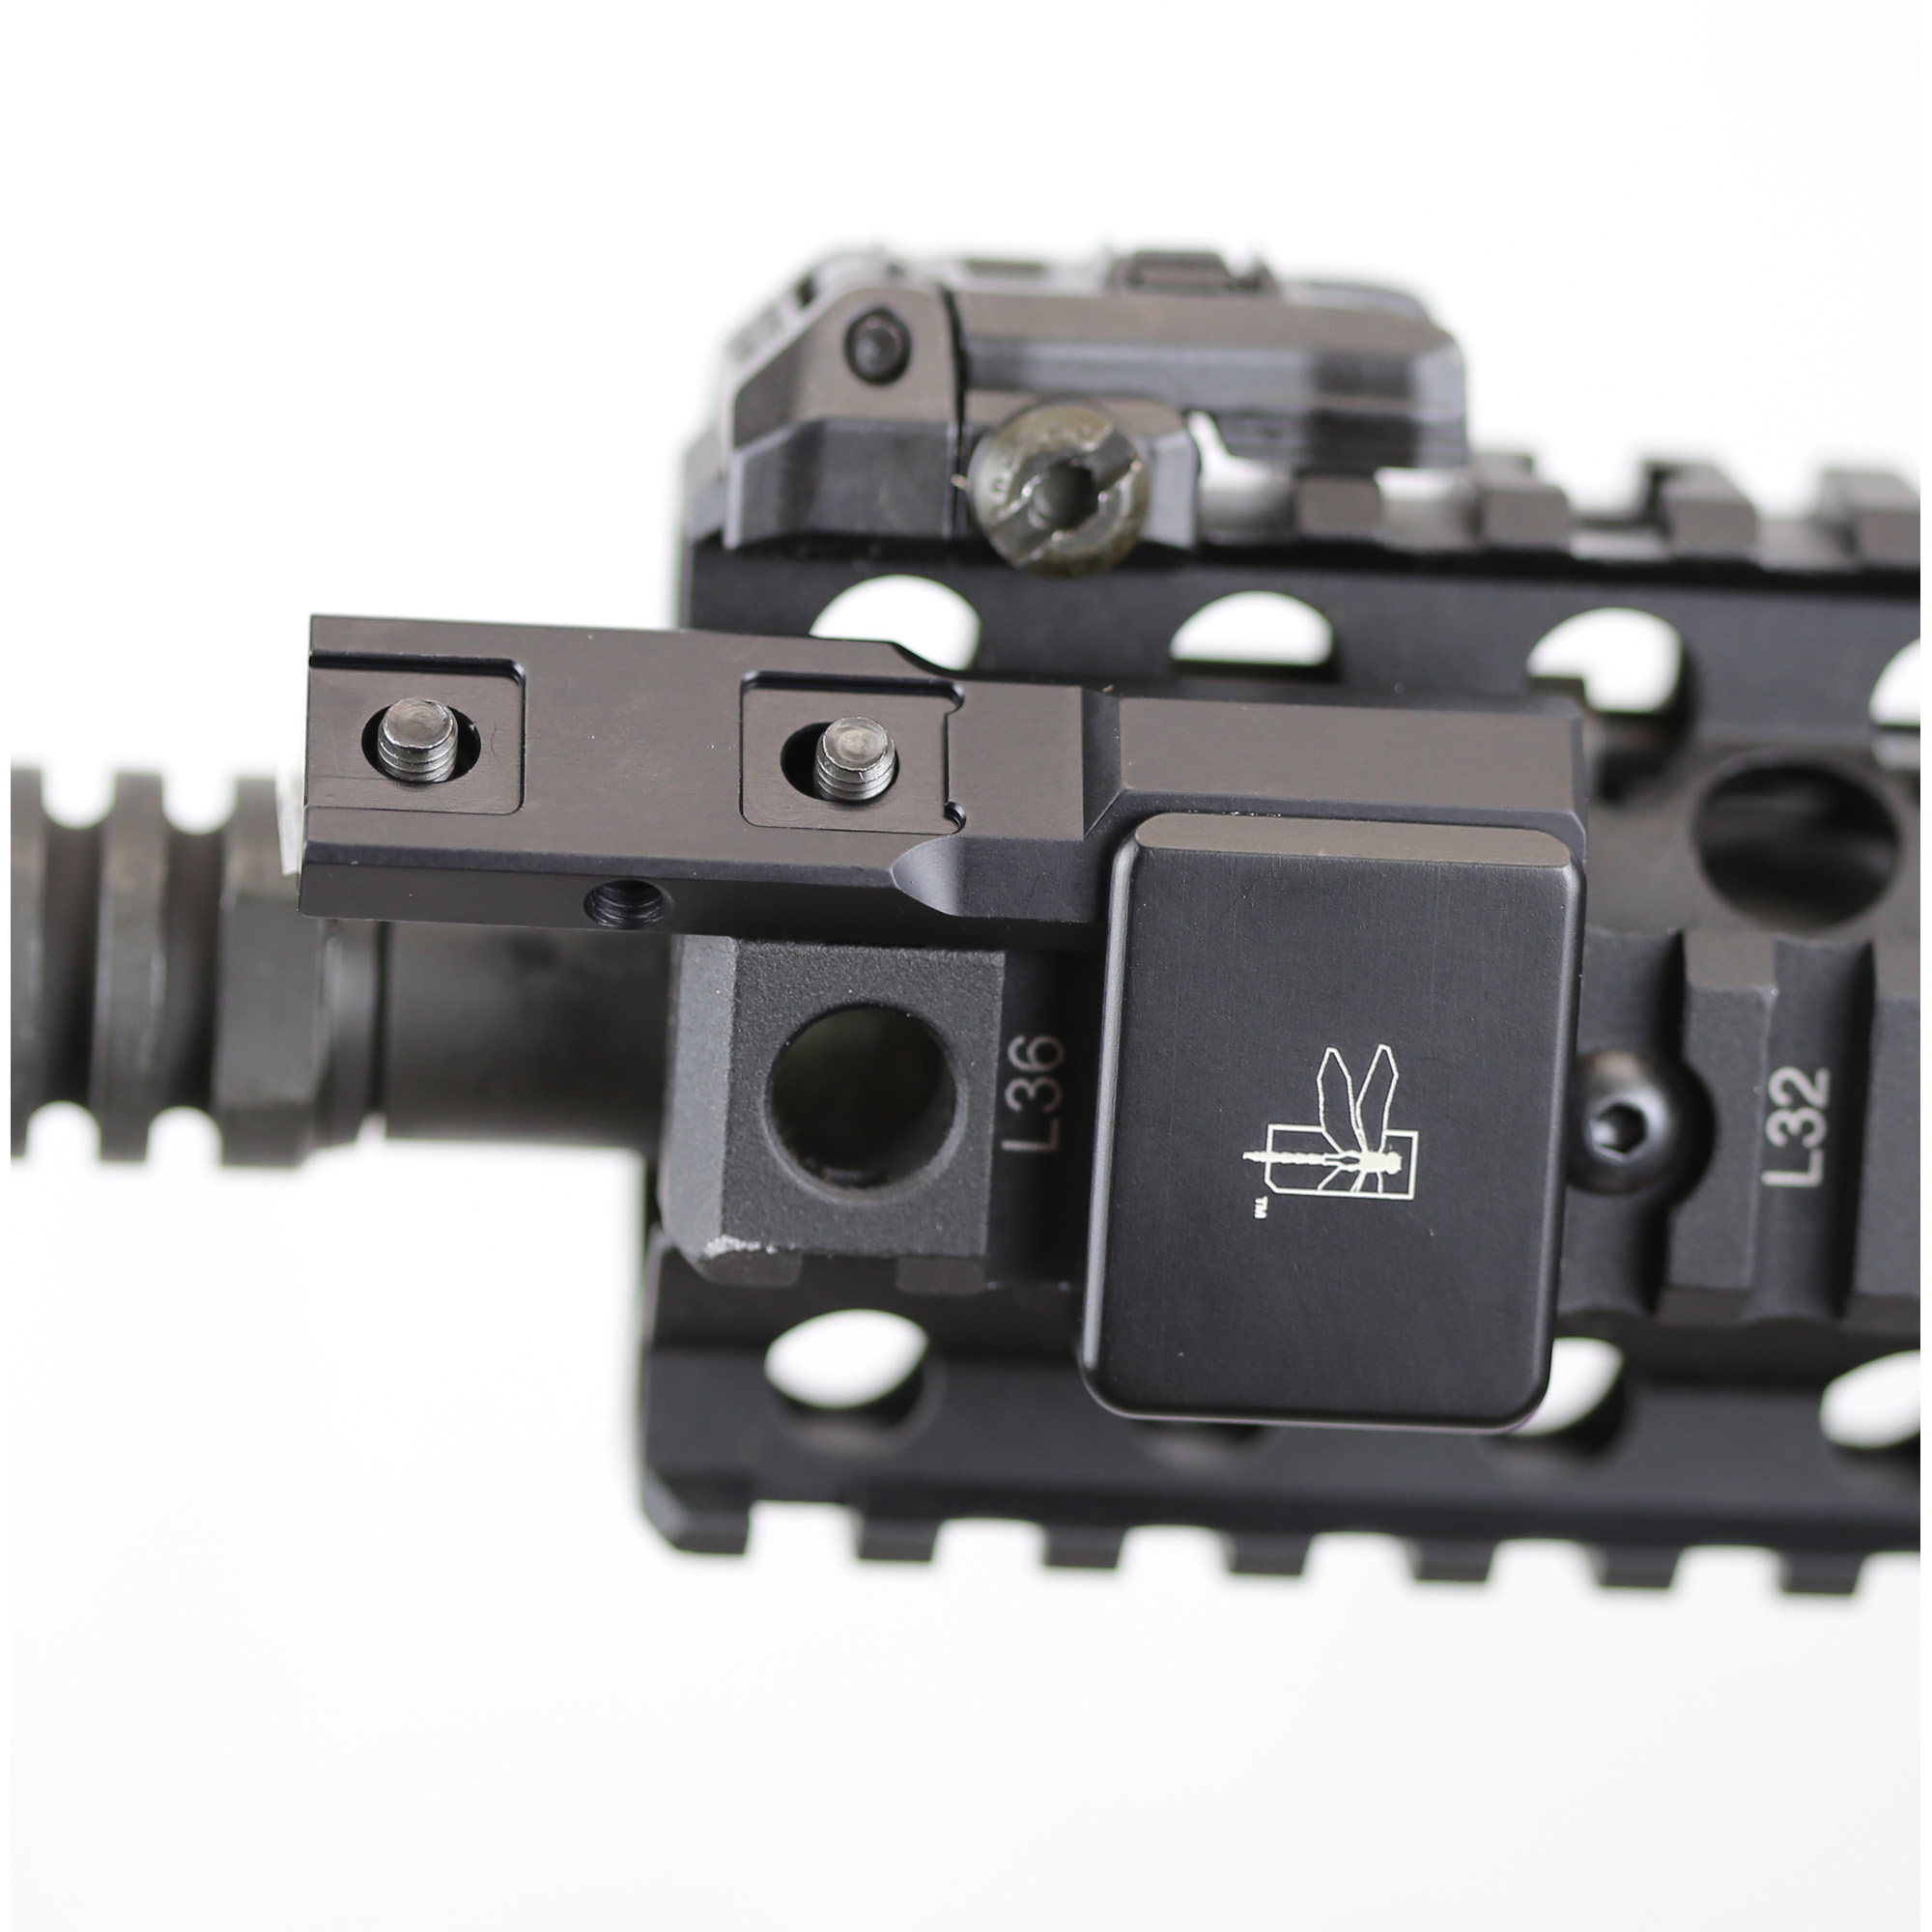 """THORNTAIL SBR Light Mount is designed to accept Surefire M300/M600 Scout"""" Streamlight Rail Mount 1/2 & HL-X Weapon lights and Backbone Replacement M300/M600 Scout Bodies and other Replacement M300/M600 Scout Bodies."""